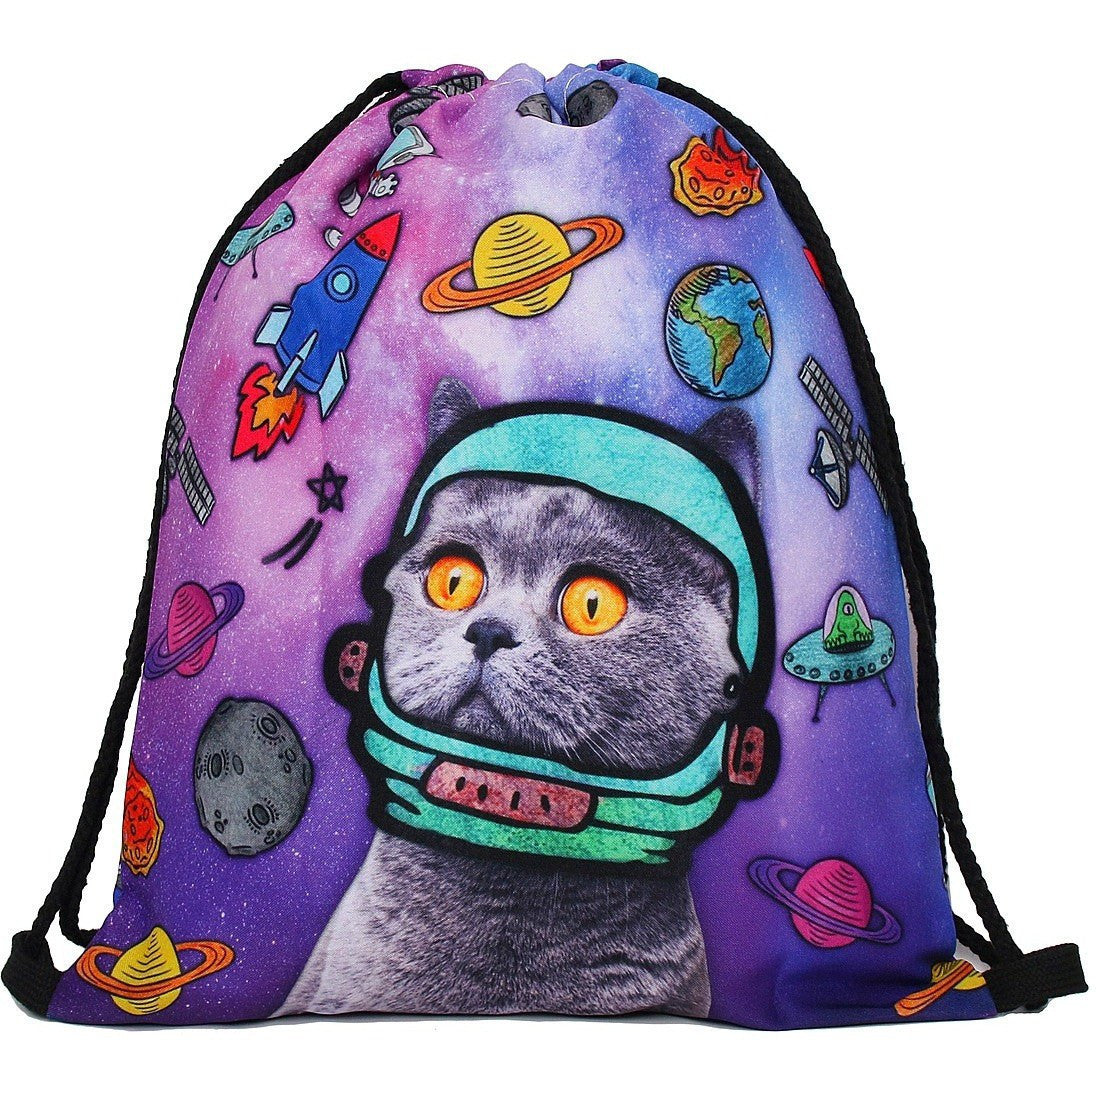 Space Kitty Drawstring Bag - Rave Rebel